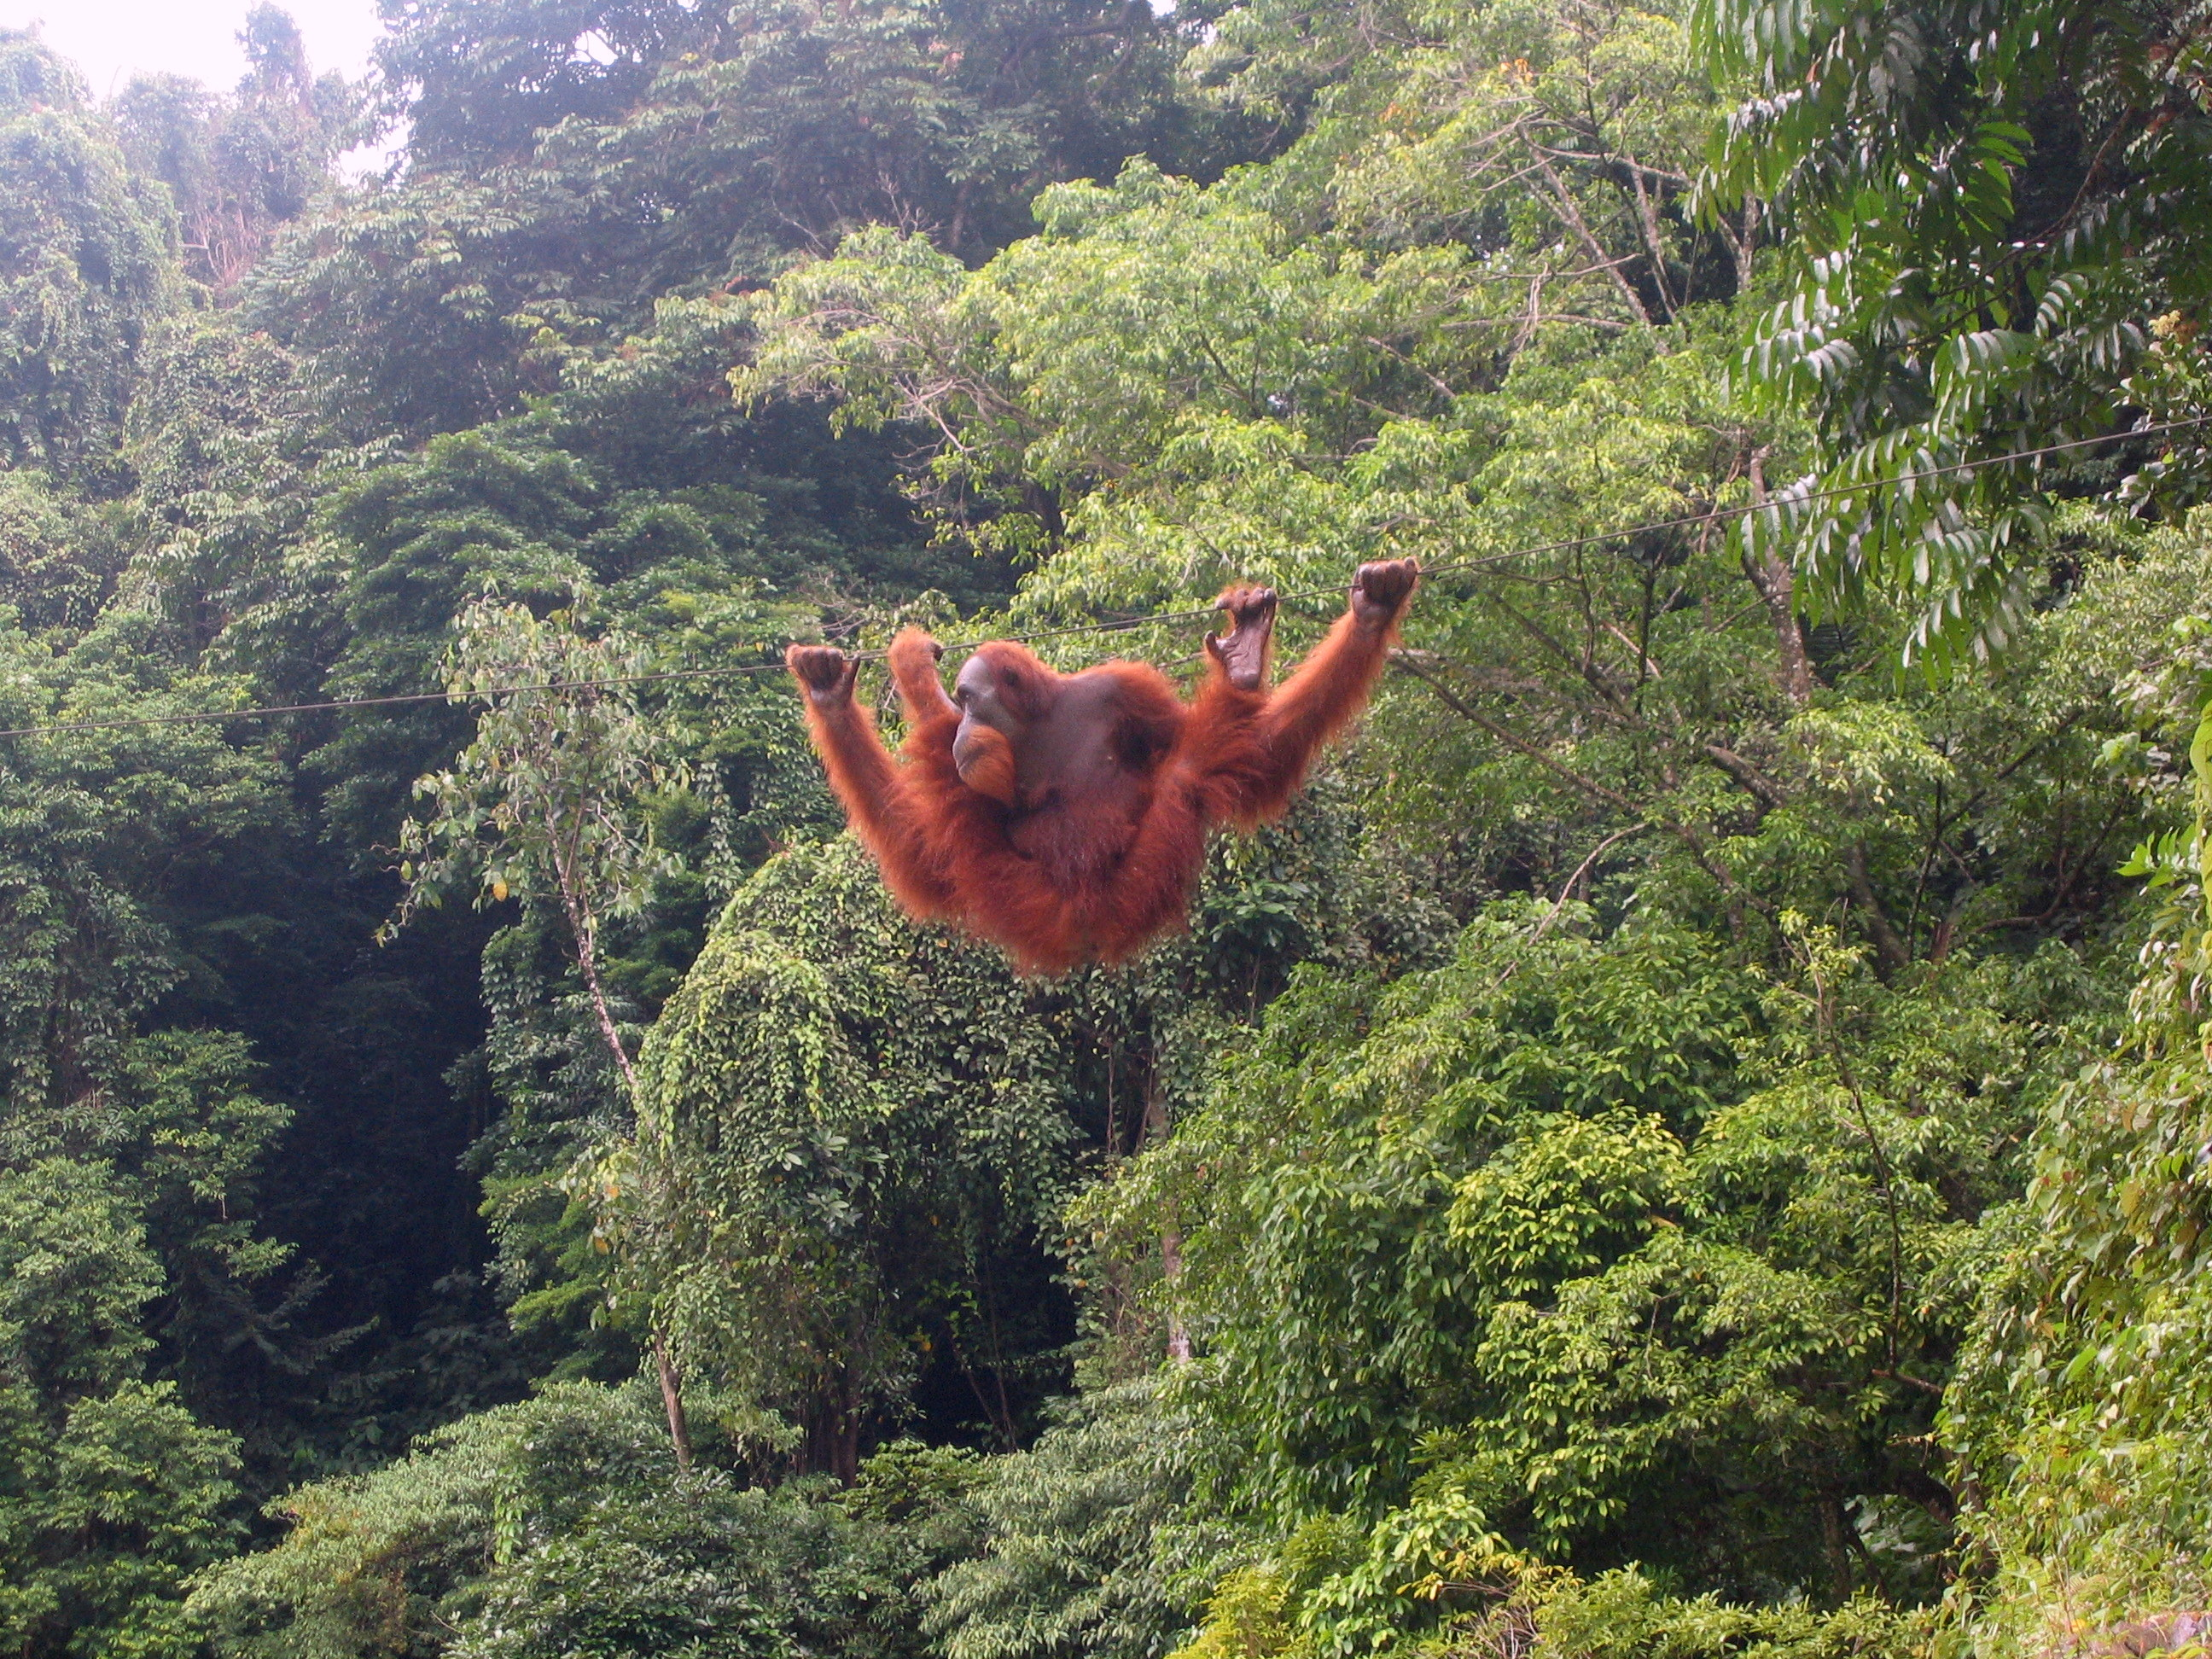 Description orang-utan bukit lawang 2006